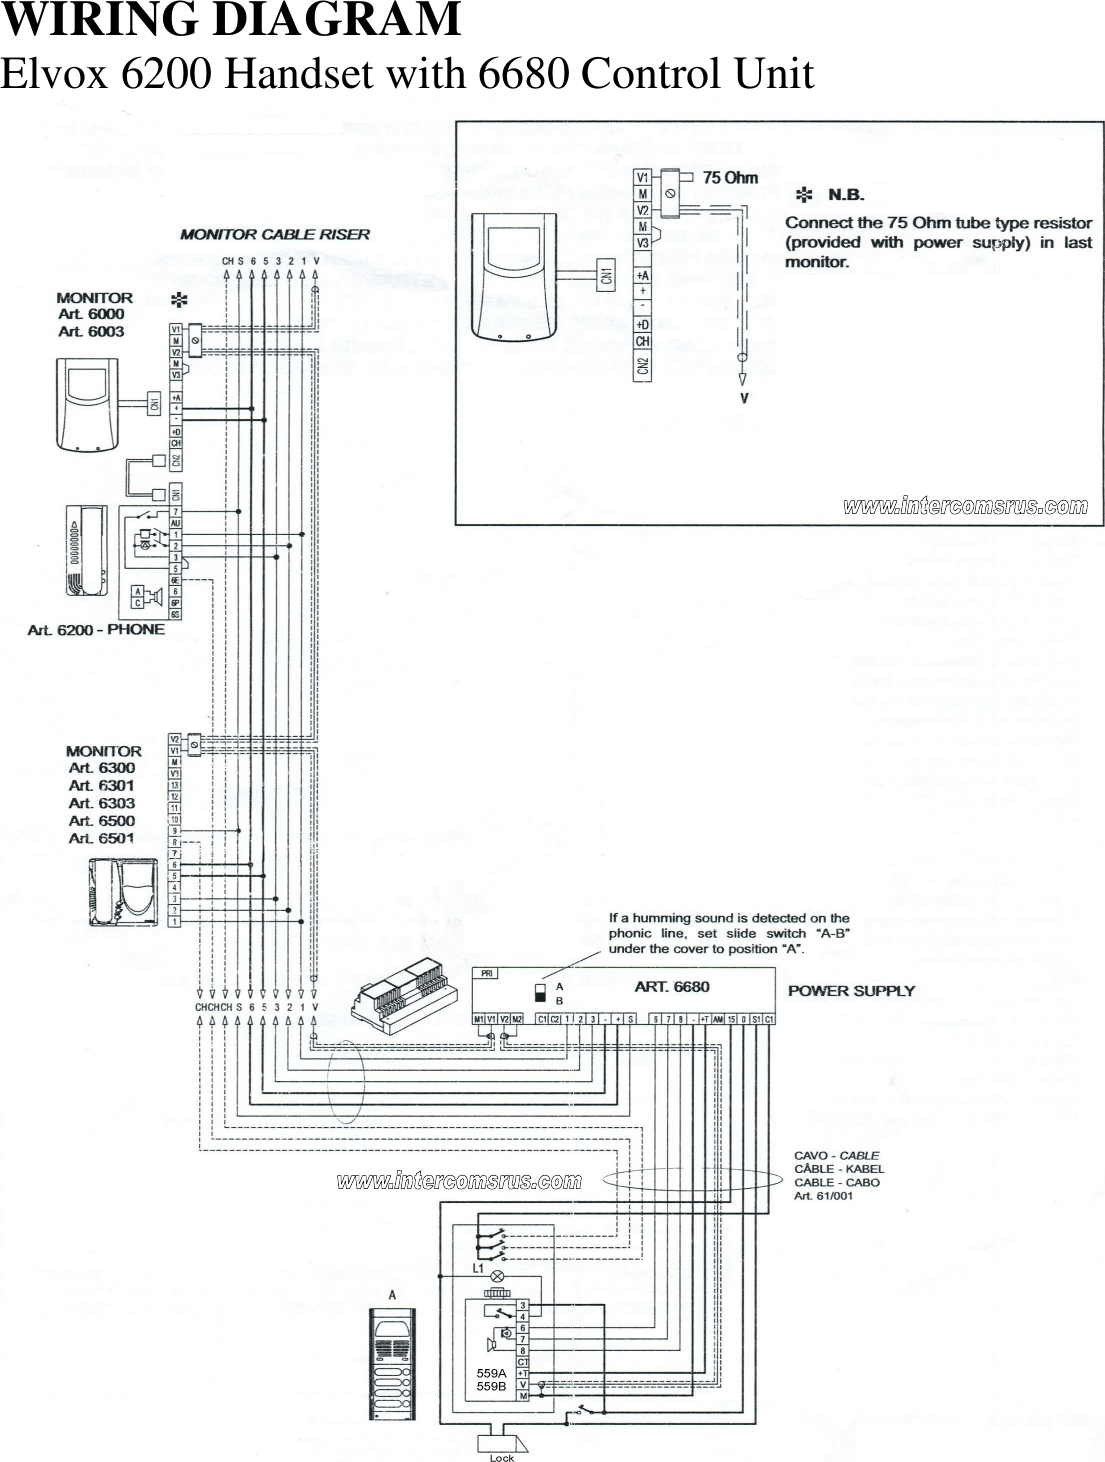 Elvox 6200 Intercom Handset Data Sheet Elvox6200